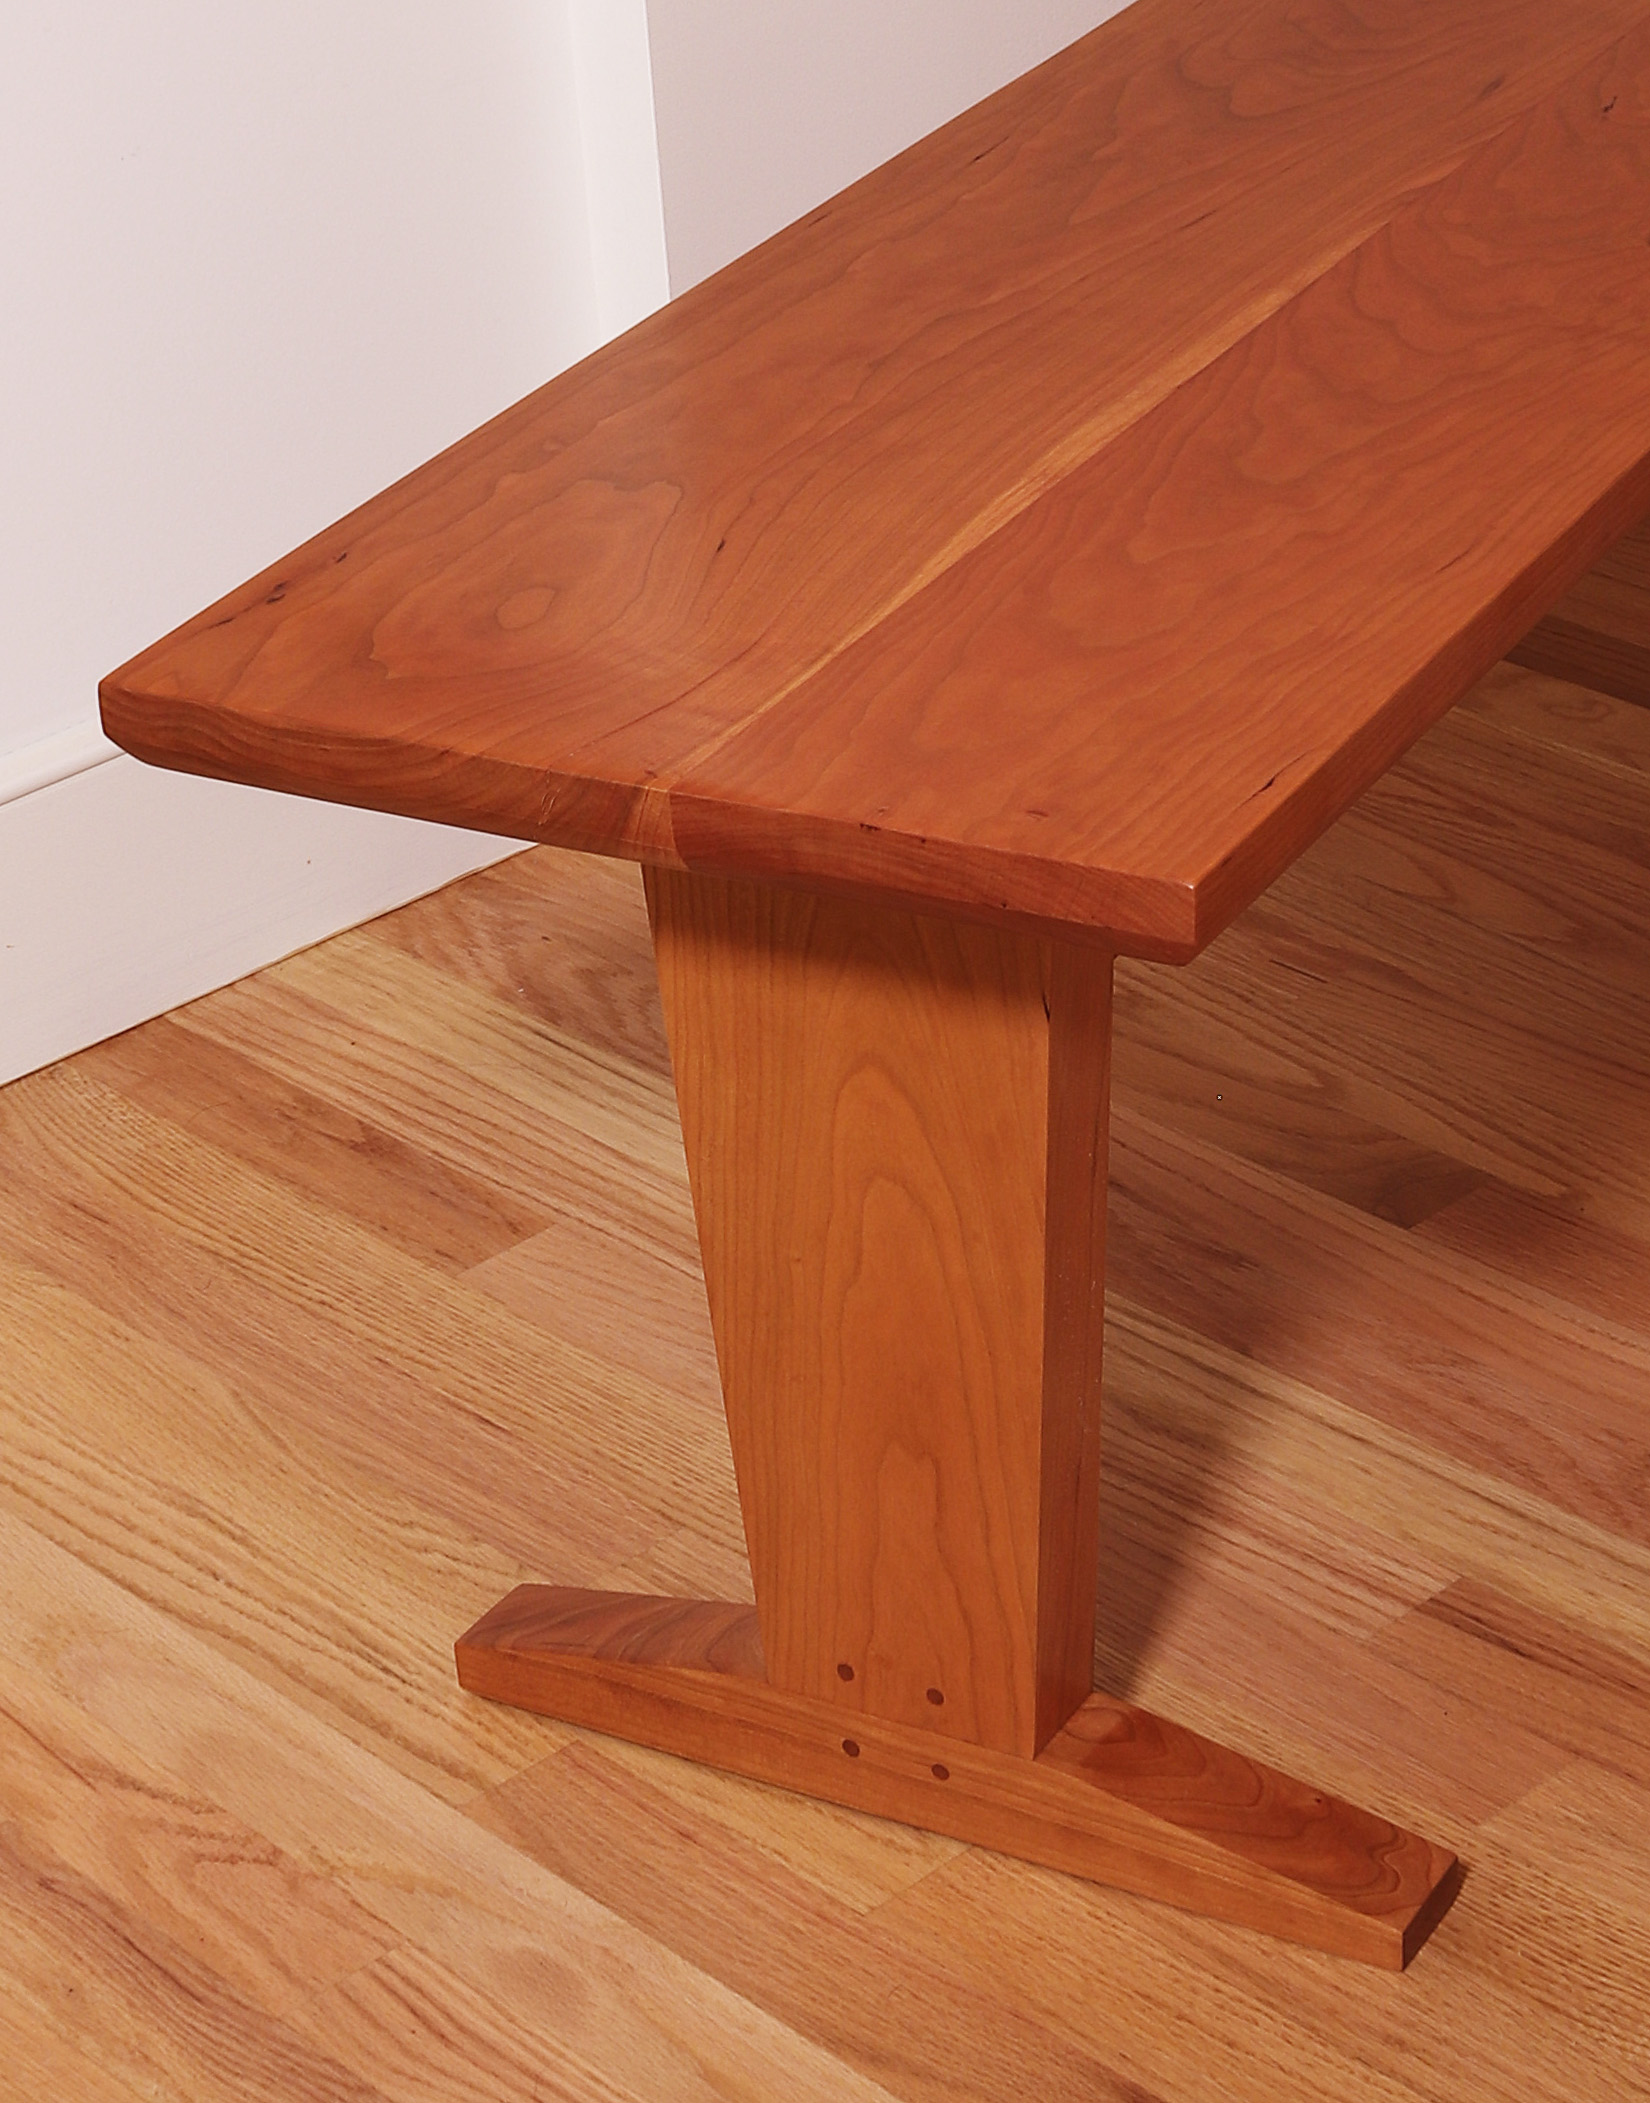 "Large cherry dining table bench: 54"" x 15"" x 18"" high"